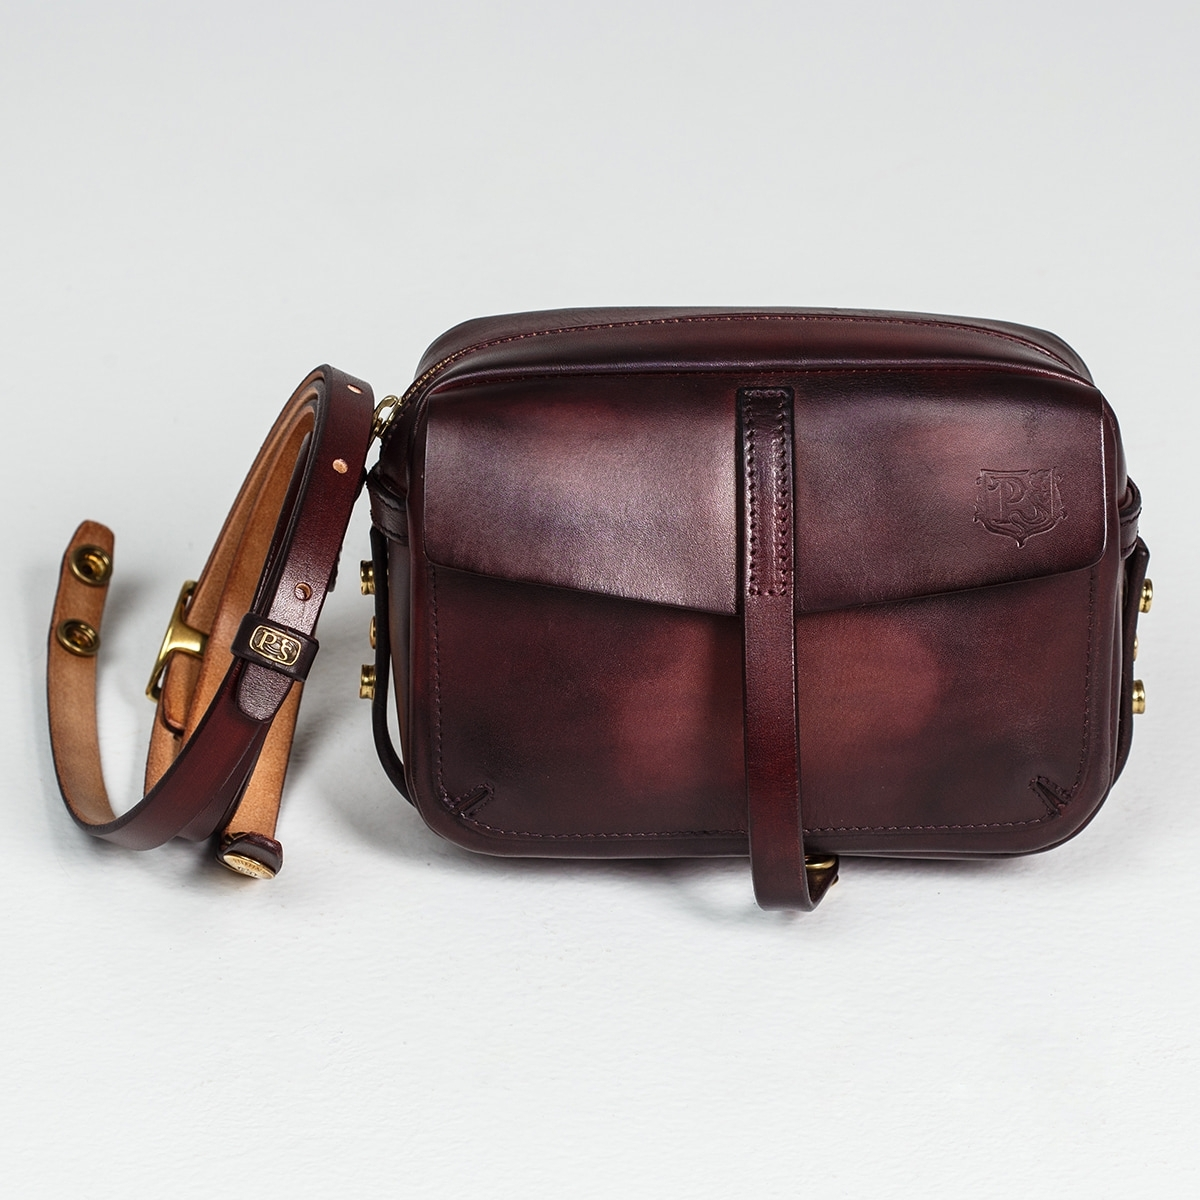 Smart crossbody bag - clutch PUFF bordeaux